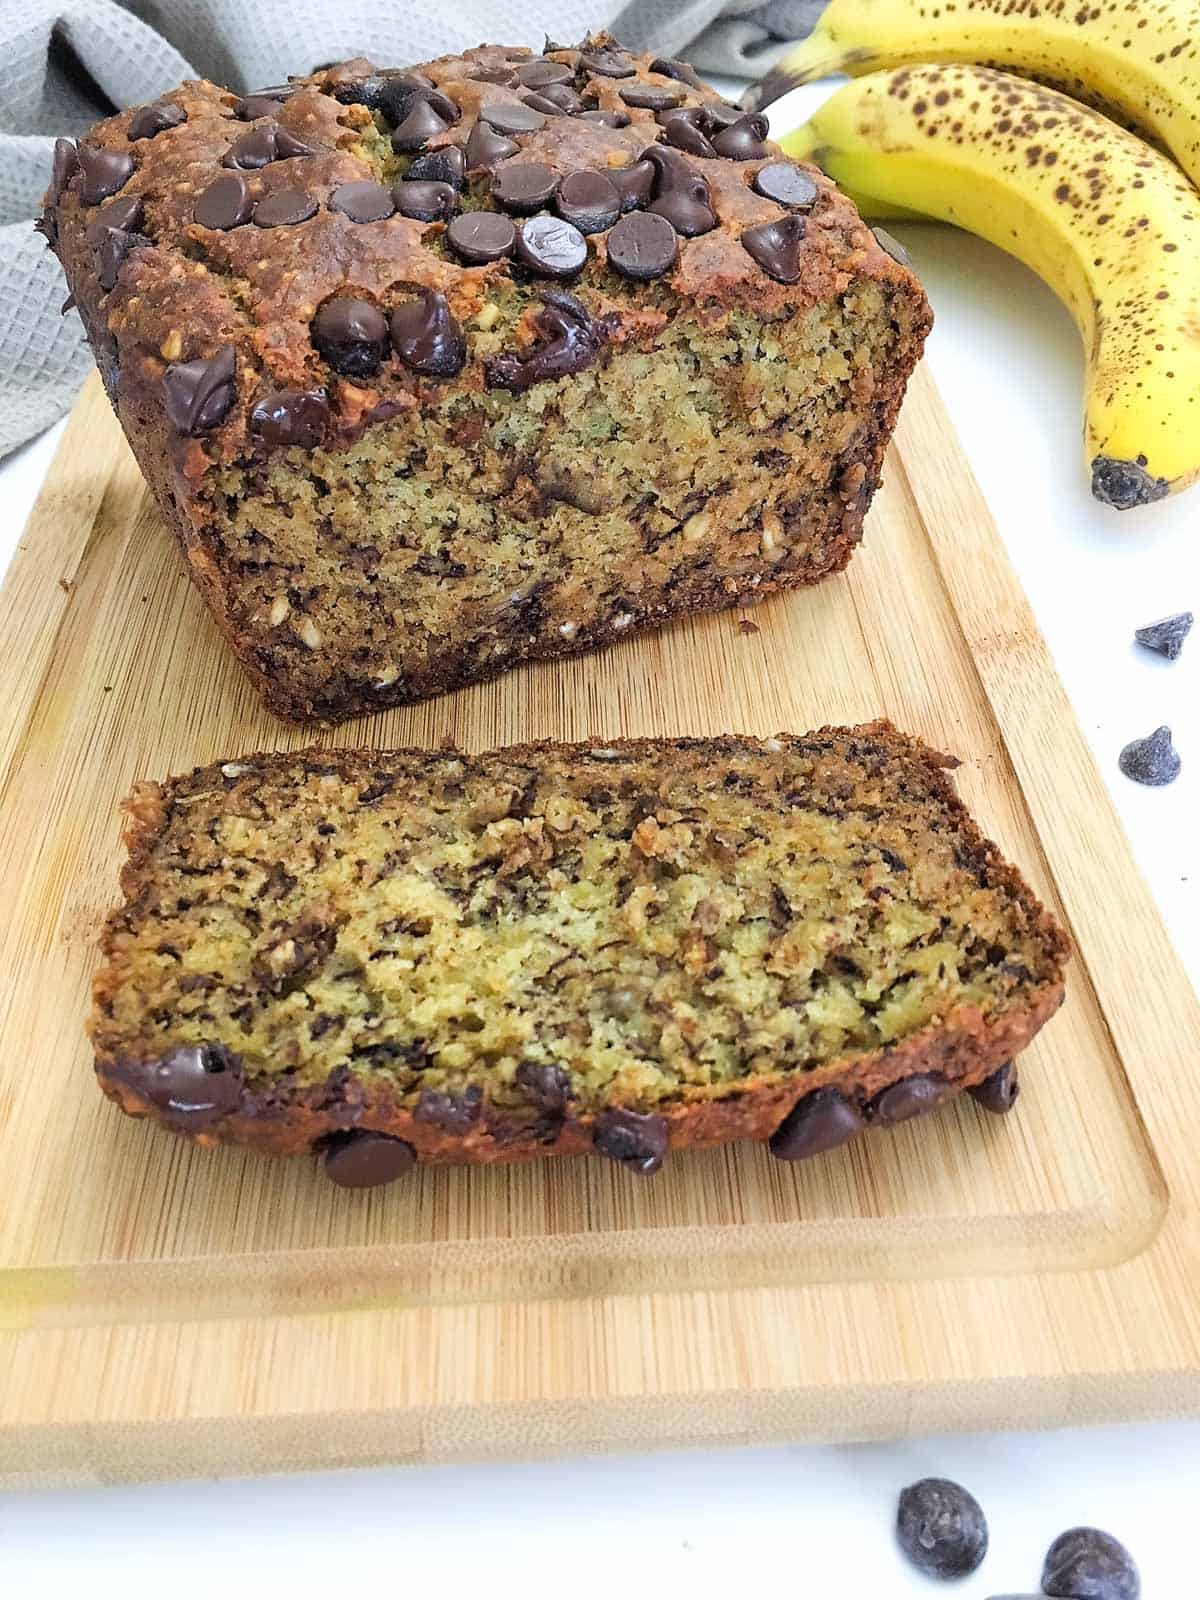 Banana bread with chocolate chips on top on wooden cutting board with one slice cut.